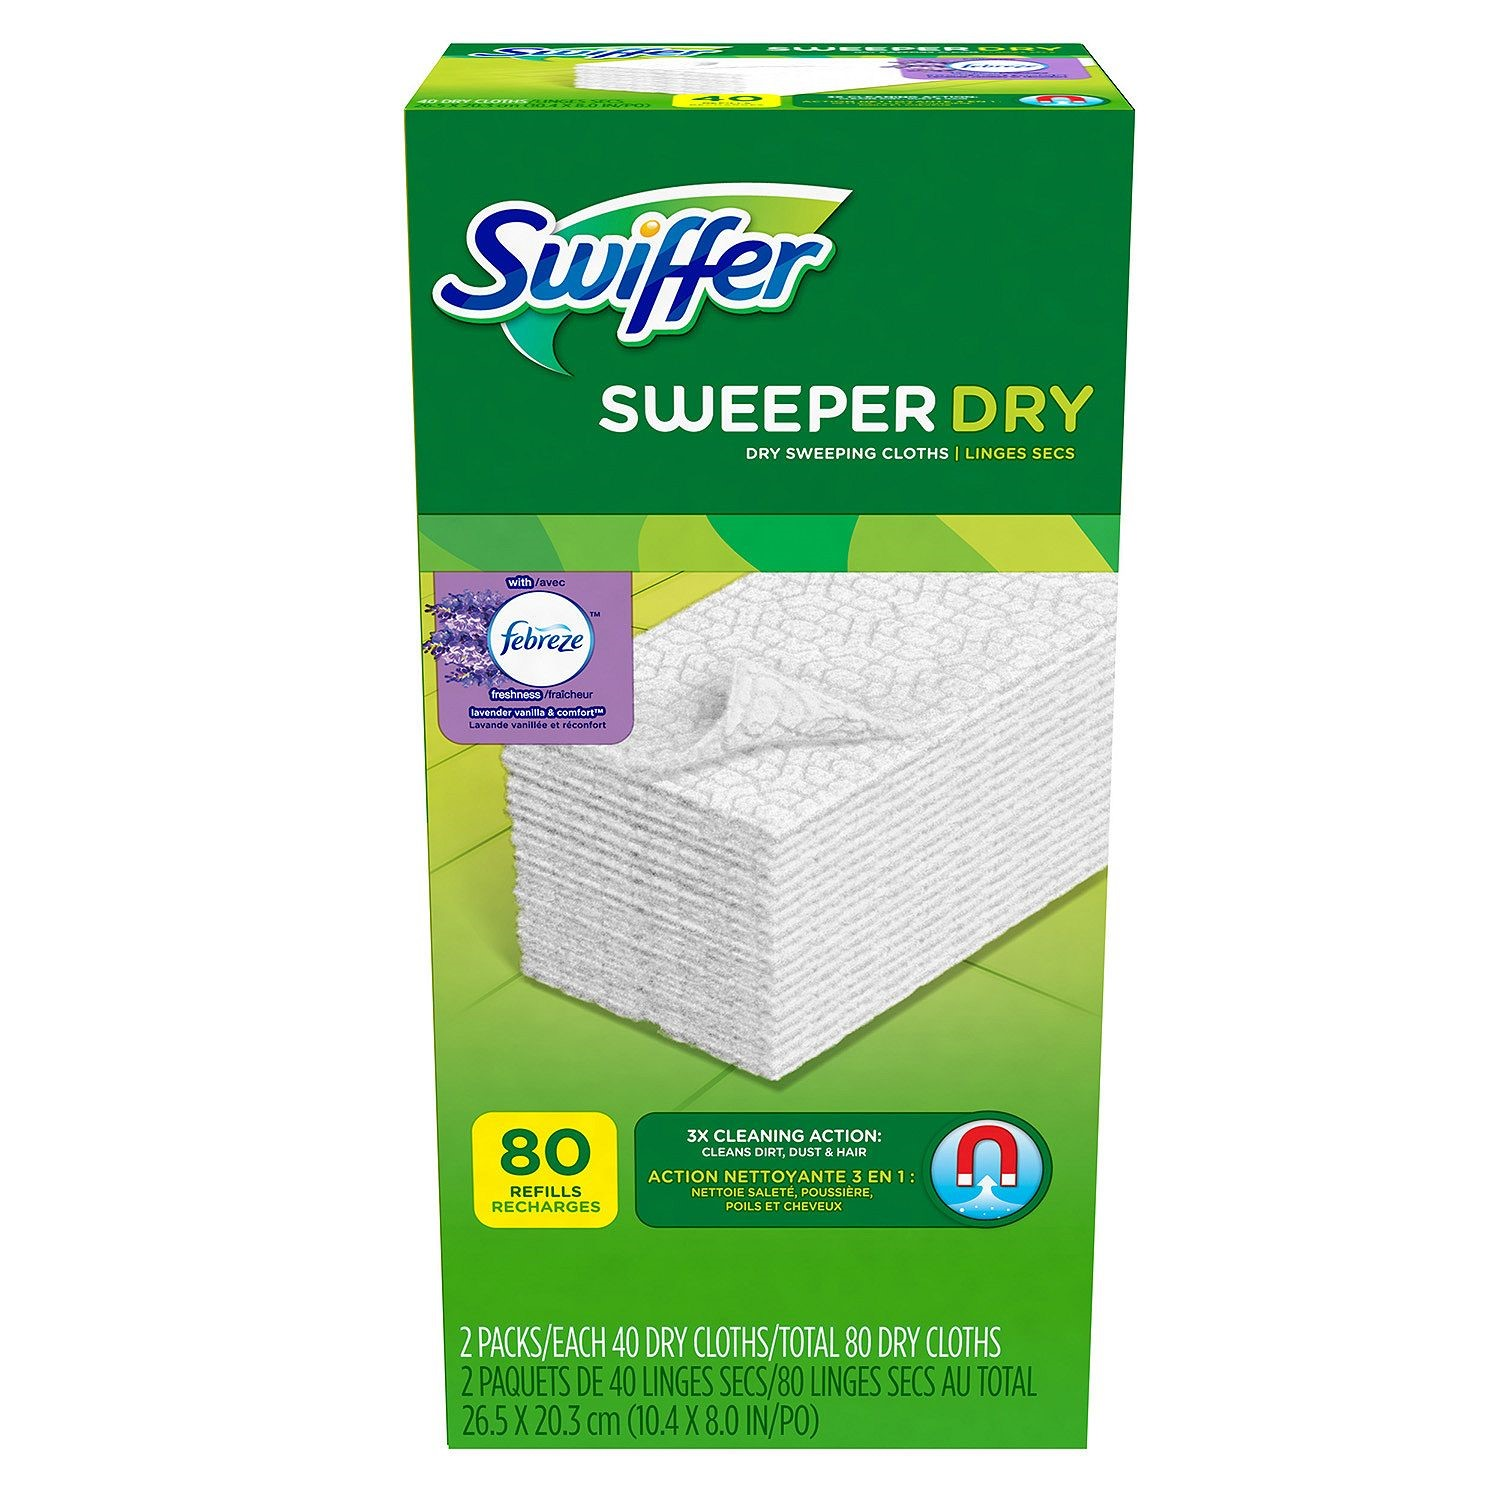 Swiffer Sweeper Dry Cloth Refill, Lavender Vanilla & Comfort Scent, 80 Ct